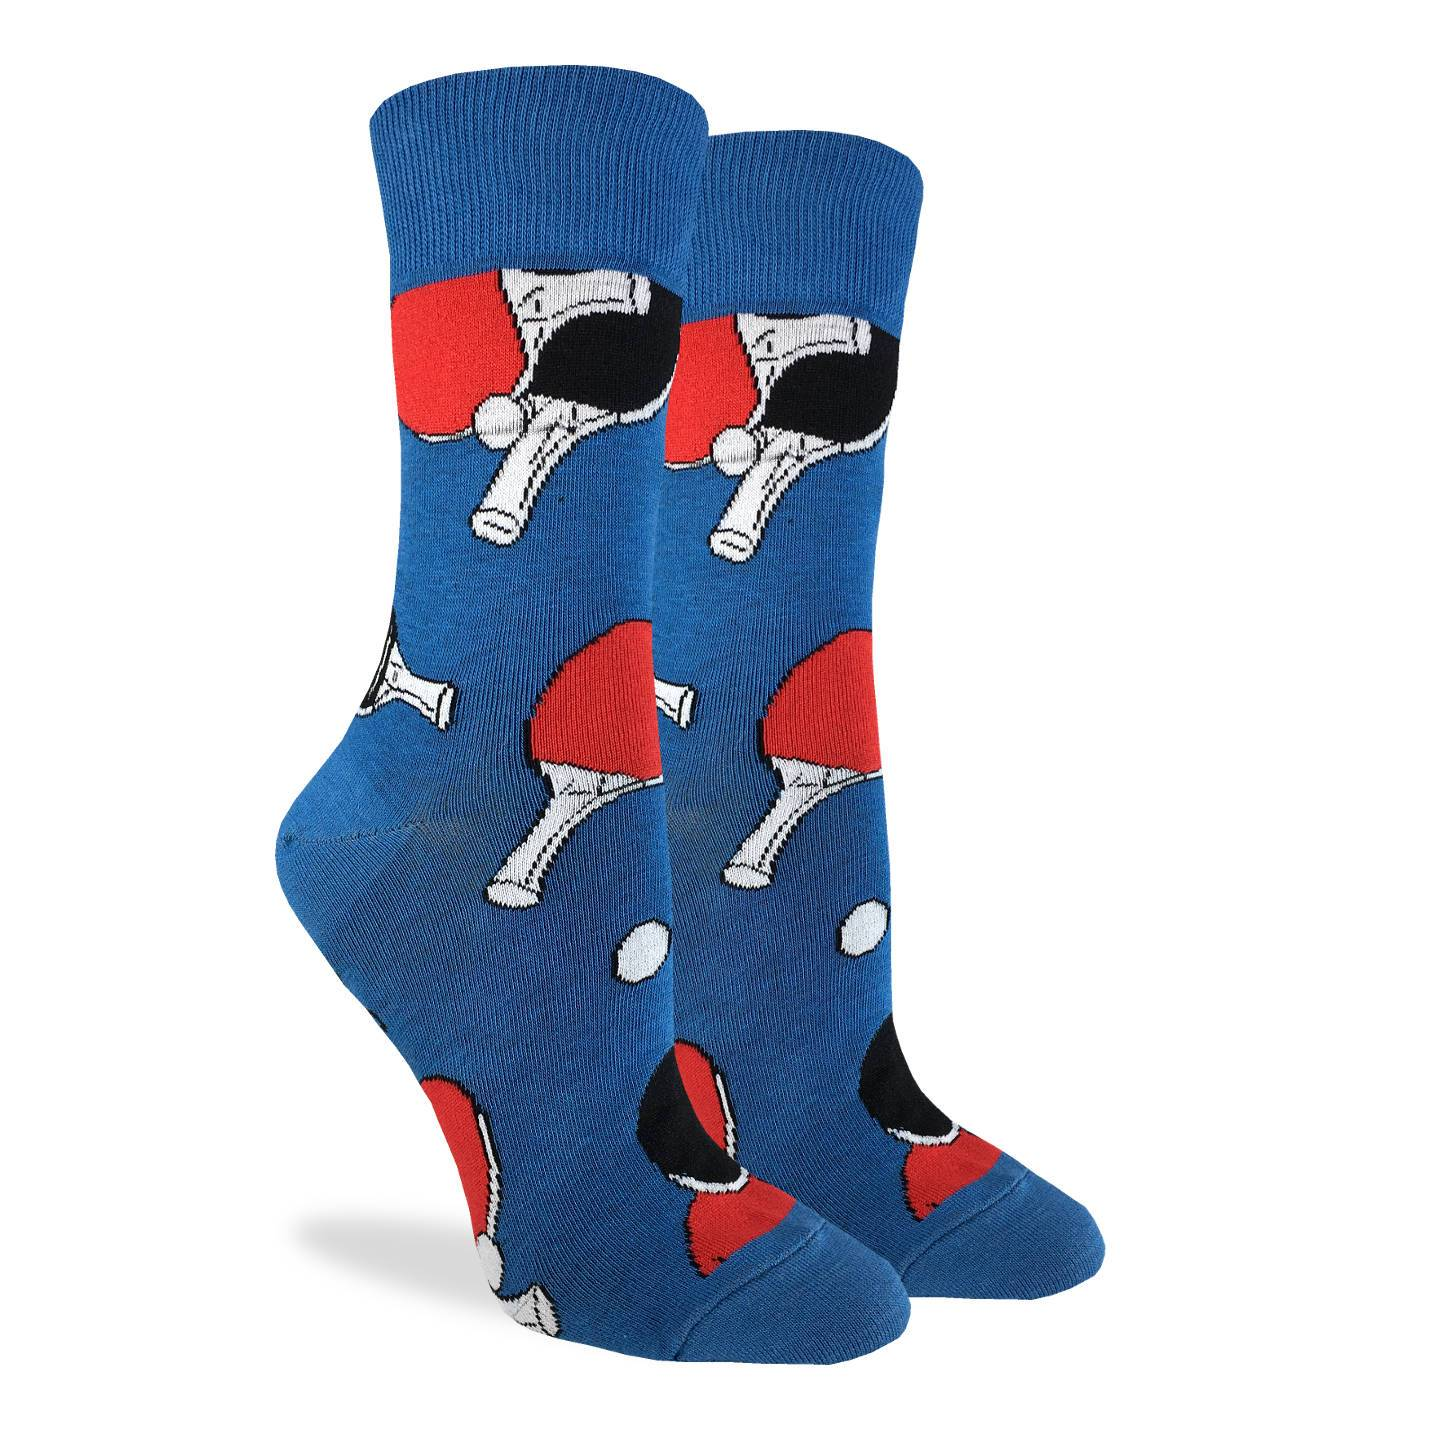 Women's Ping Pong Socks - Good Luck Sock